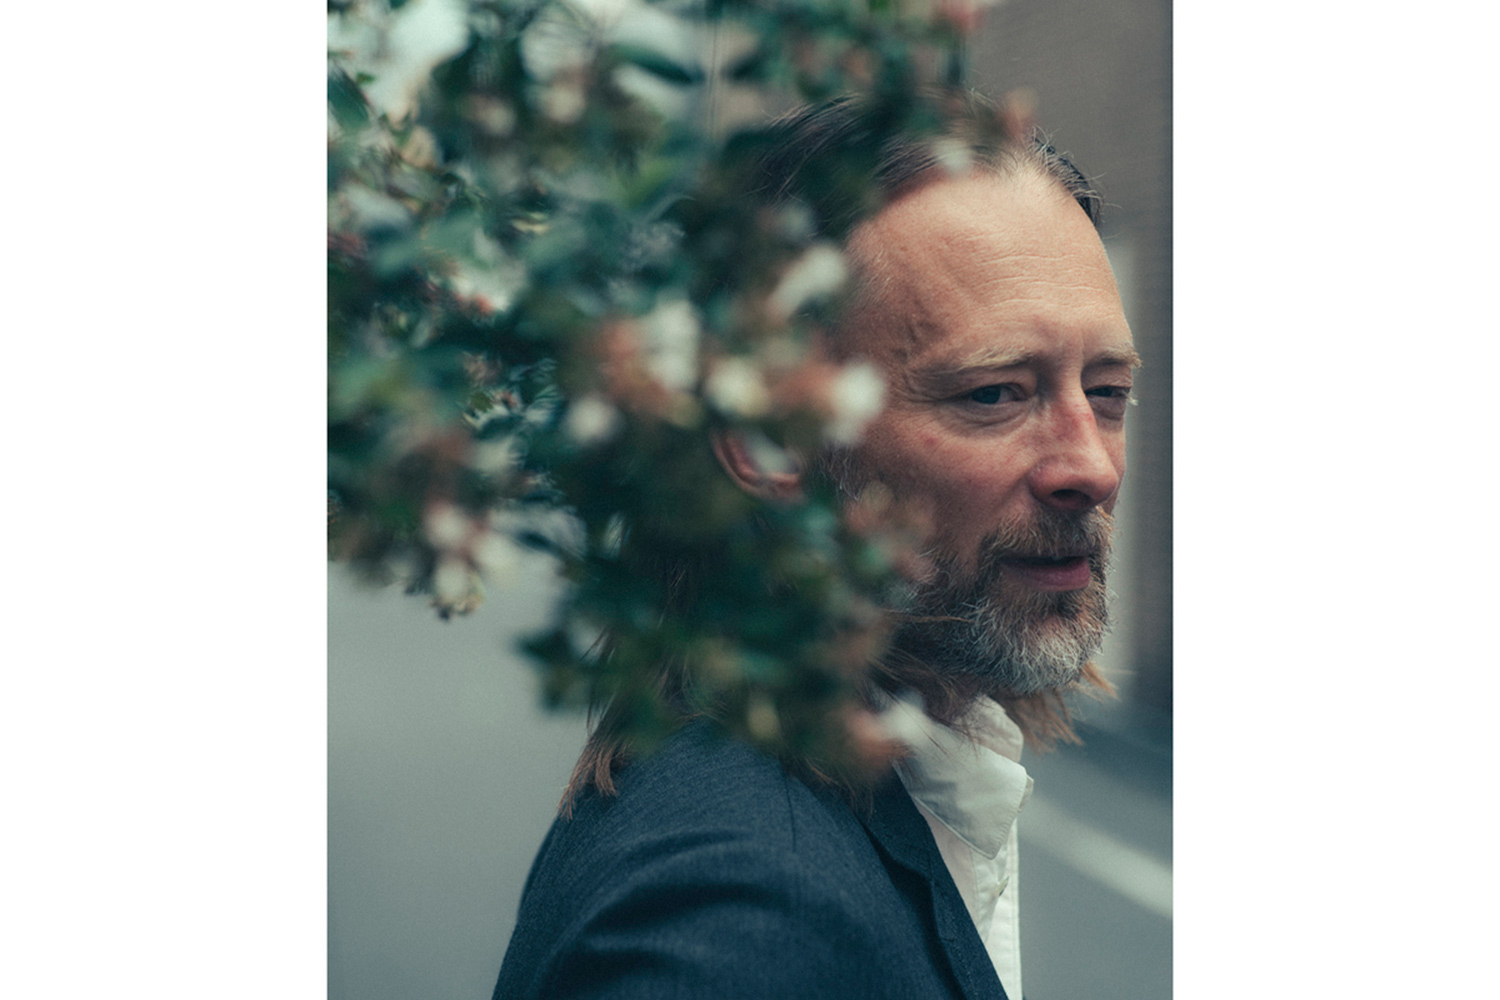 theshepherdundercover 13 Thom Yorke and Jonny Greenwood rework Radiohead songs for glorious new 16 minute mix